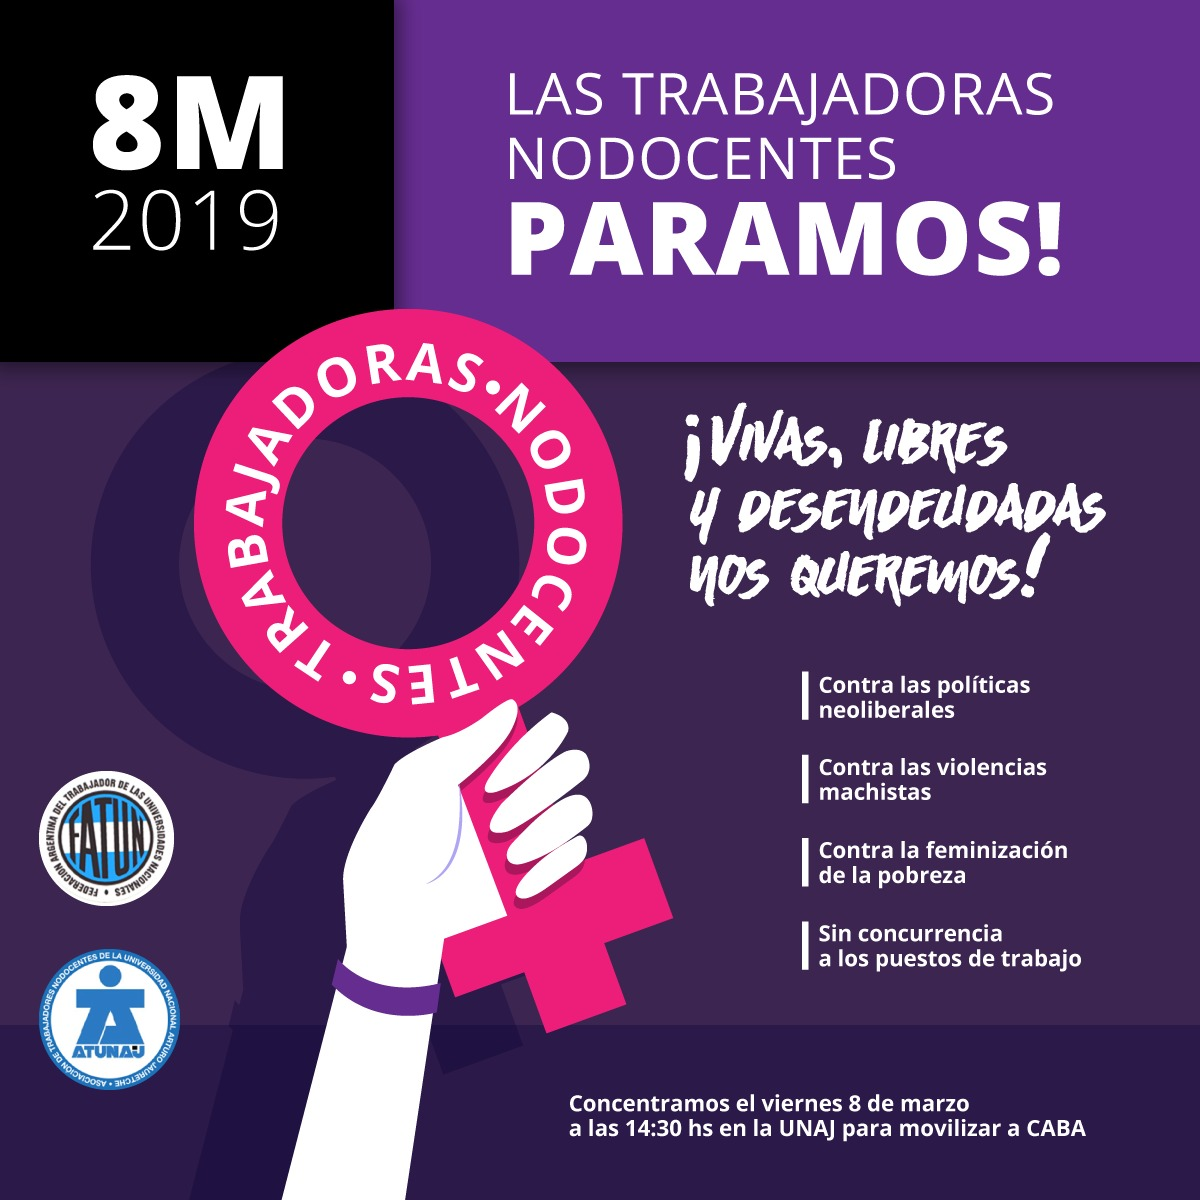 8M 2019 Convocatoria Al Paro Y Marcha De Las Trabajadoras Nodocentes De La Unaj